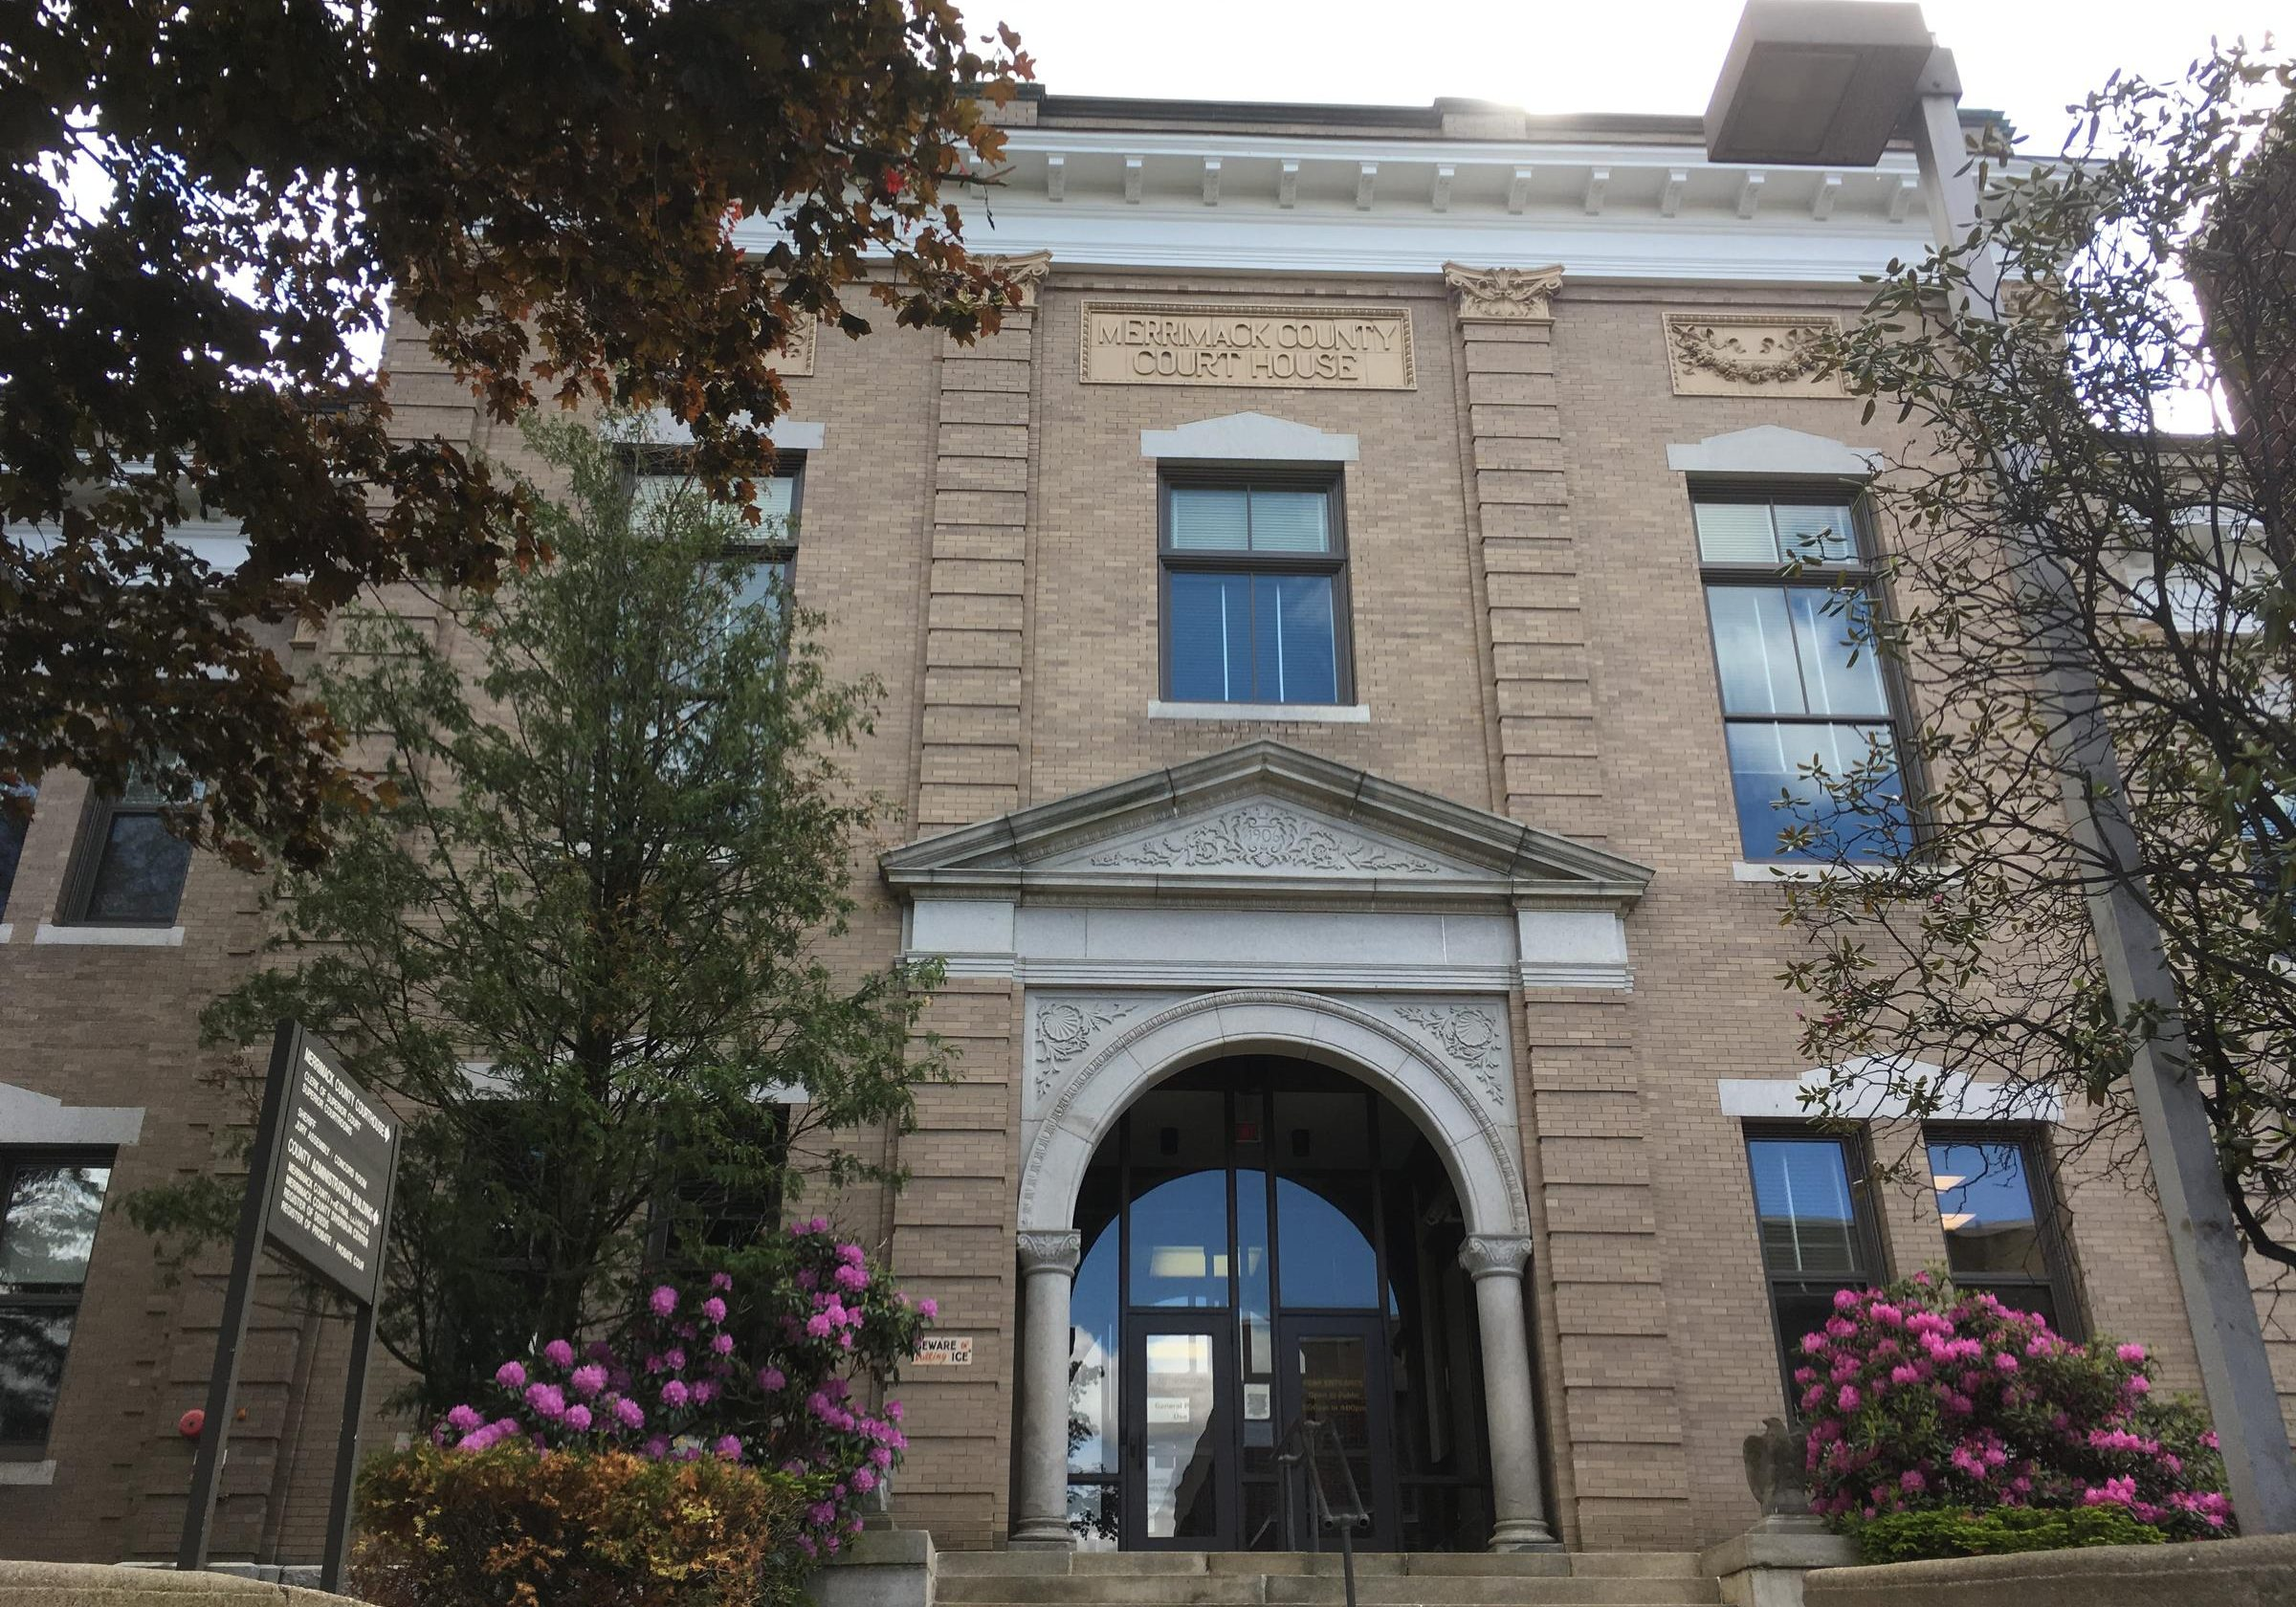 Merrimack Superior Courthouse, Concord,. New Hampshire. Photo by Emily Corwin for NHPR